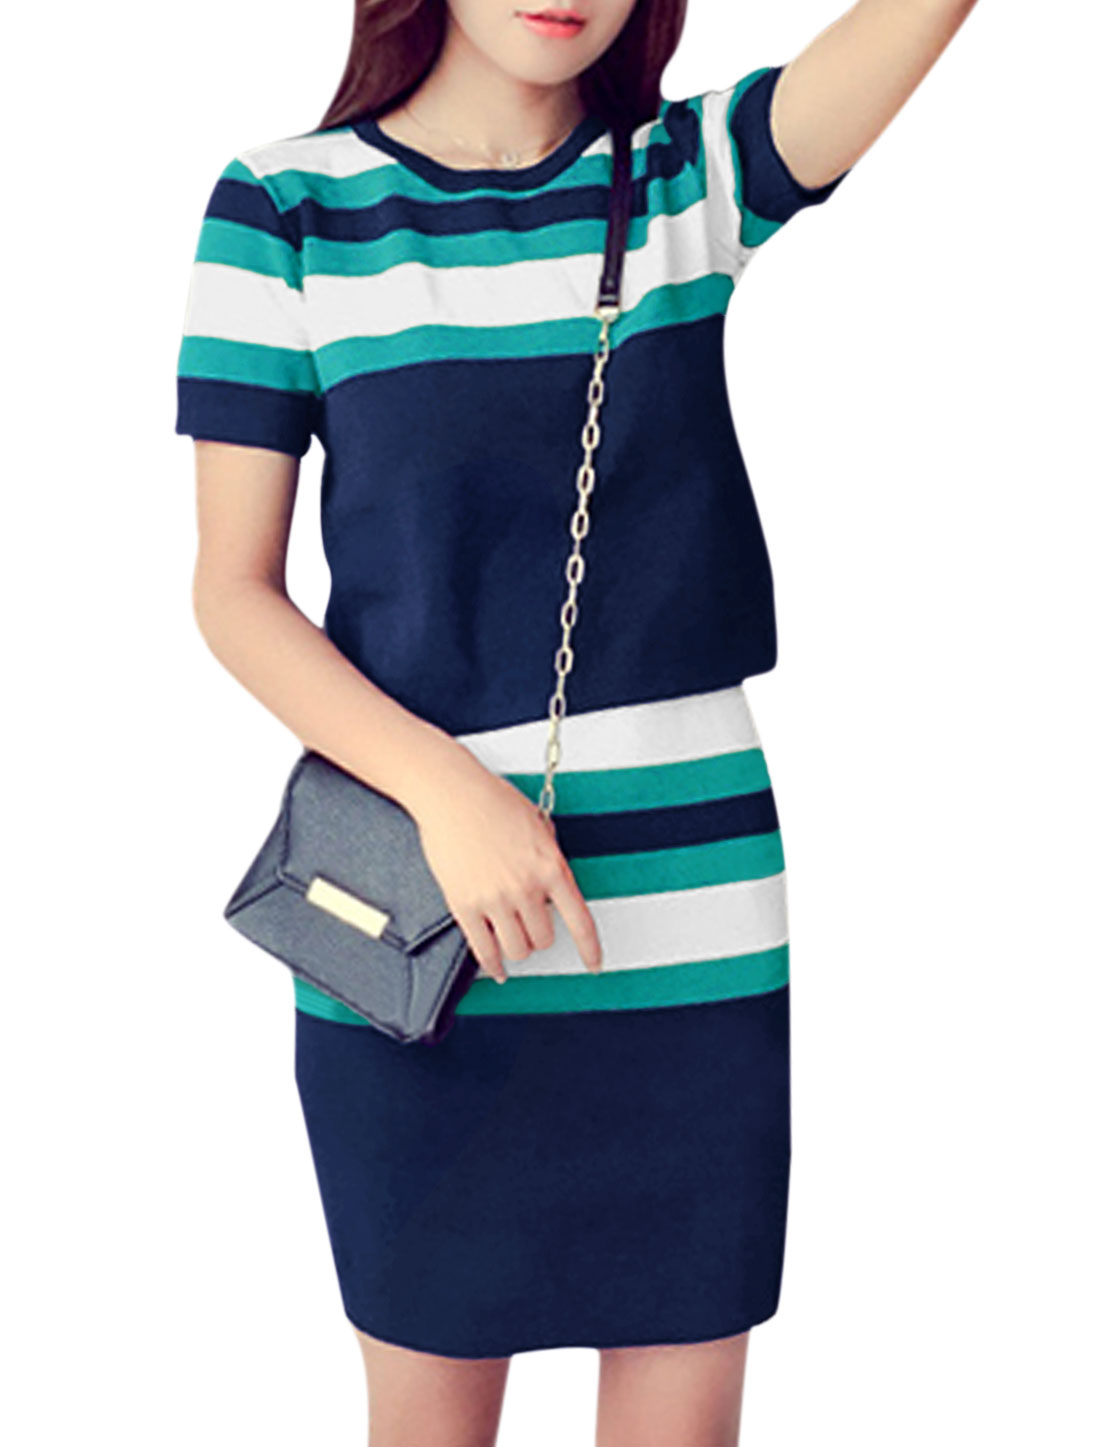 Women Stripes Knit Top w Stripe Knitted Pencil Skirt Set Sea Green Navy XS